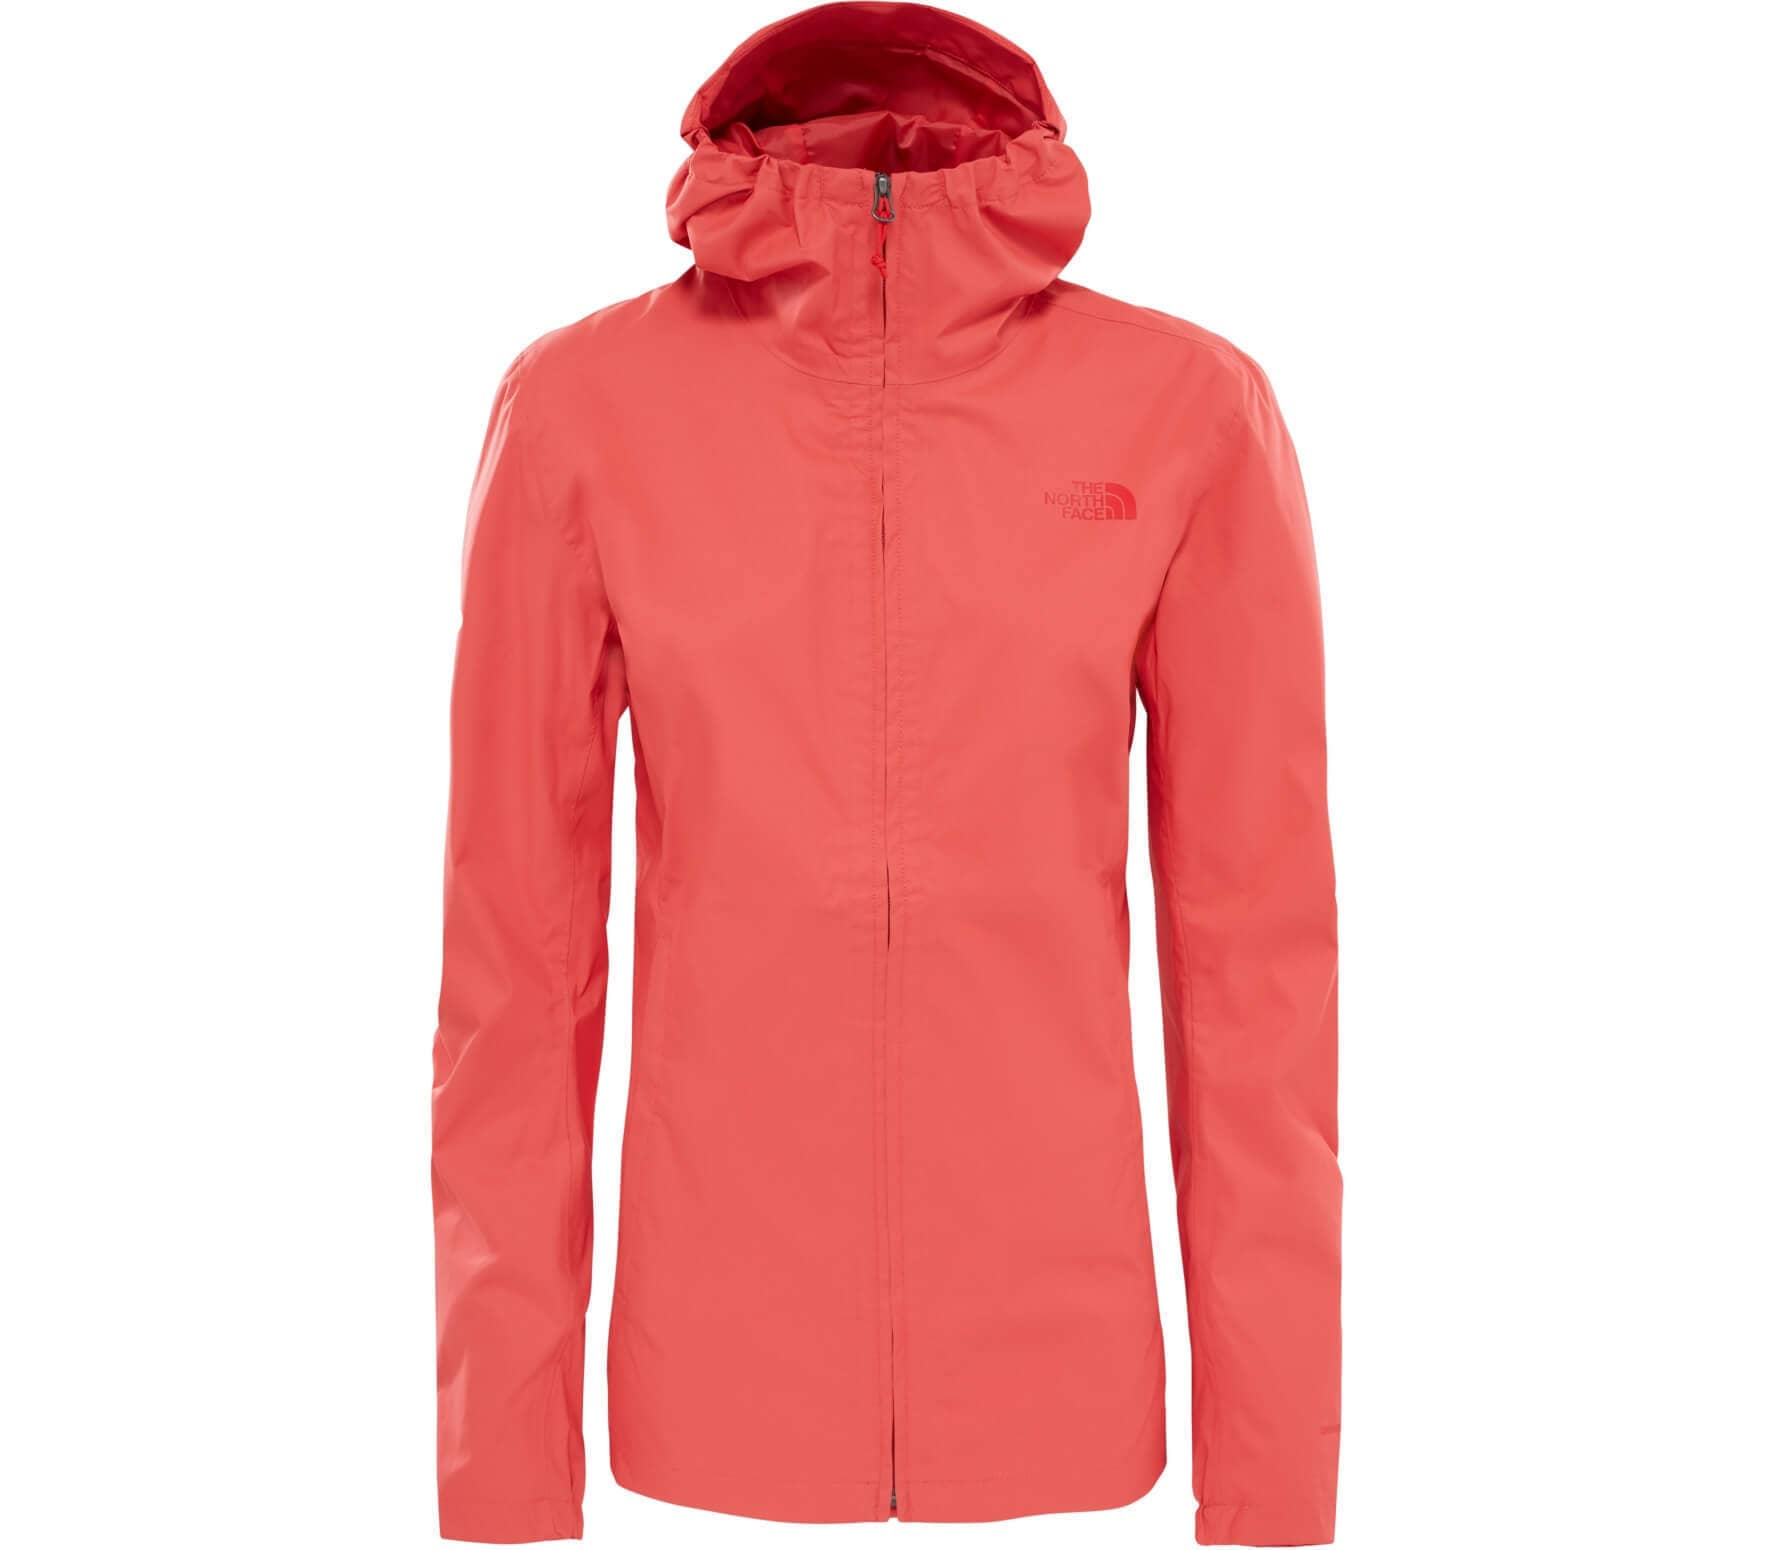 the north face tanken damen regenjacke hellrot im online shop von keller sports kaufen. Black Bedroom Furniture Sets. Home Design Ideas